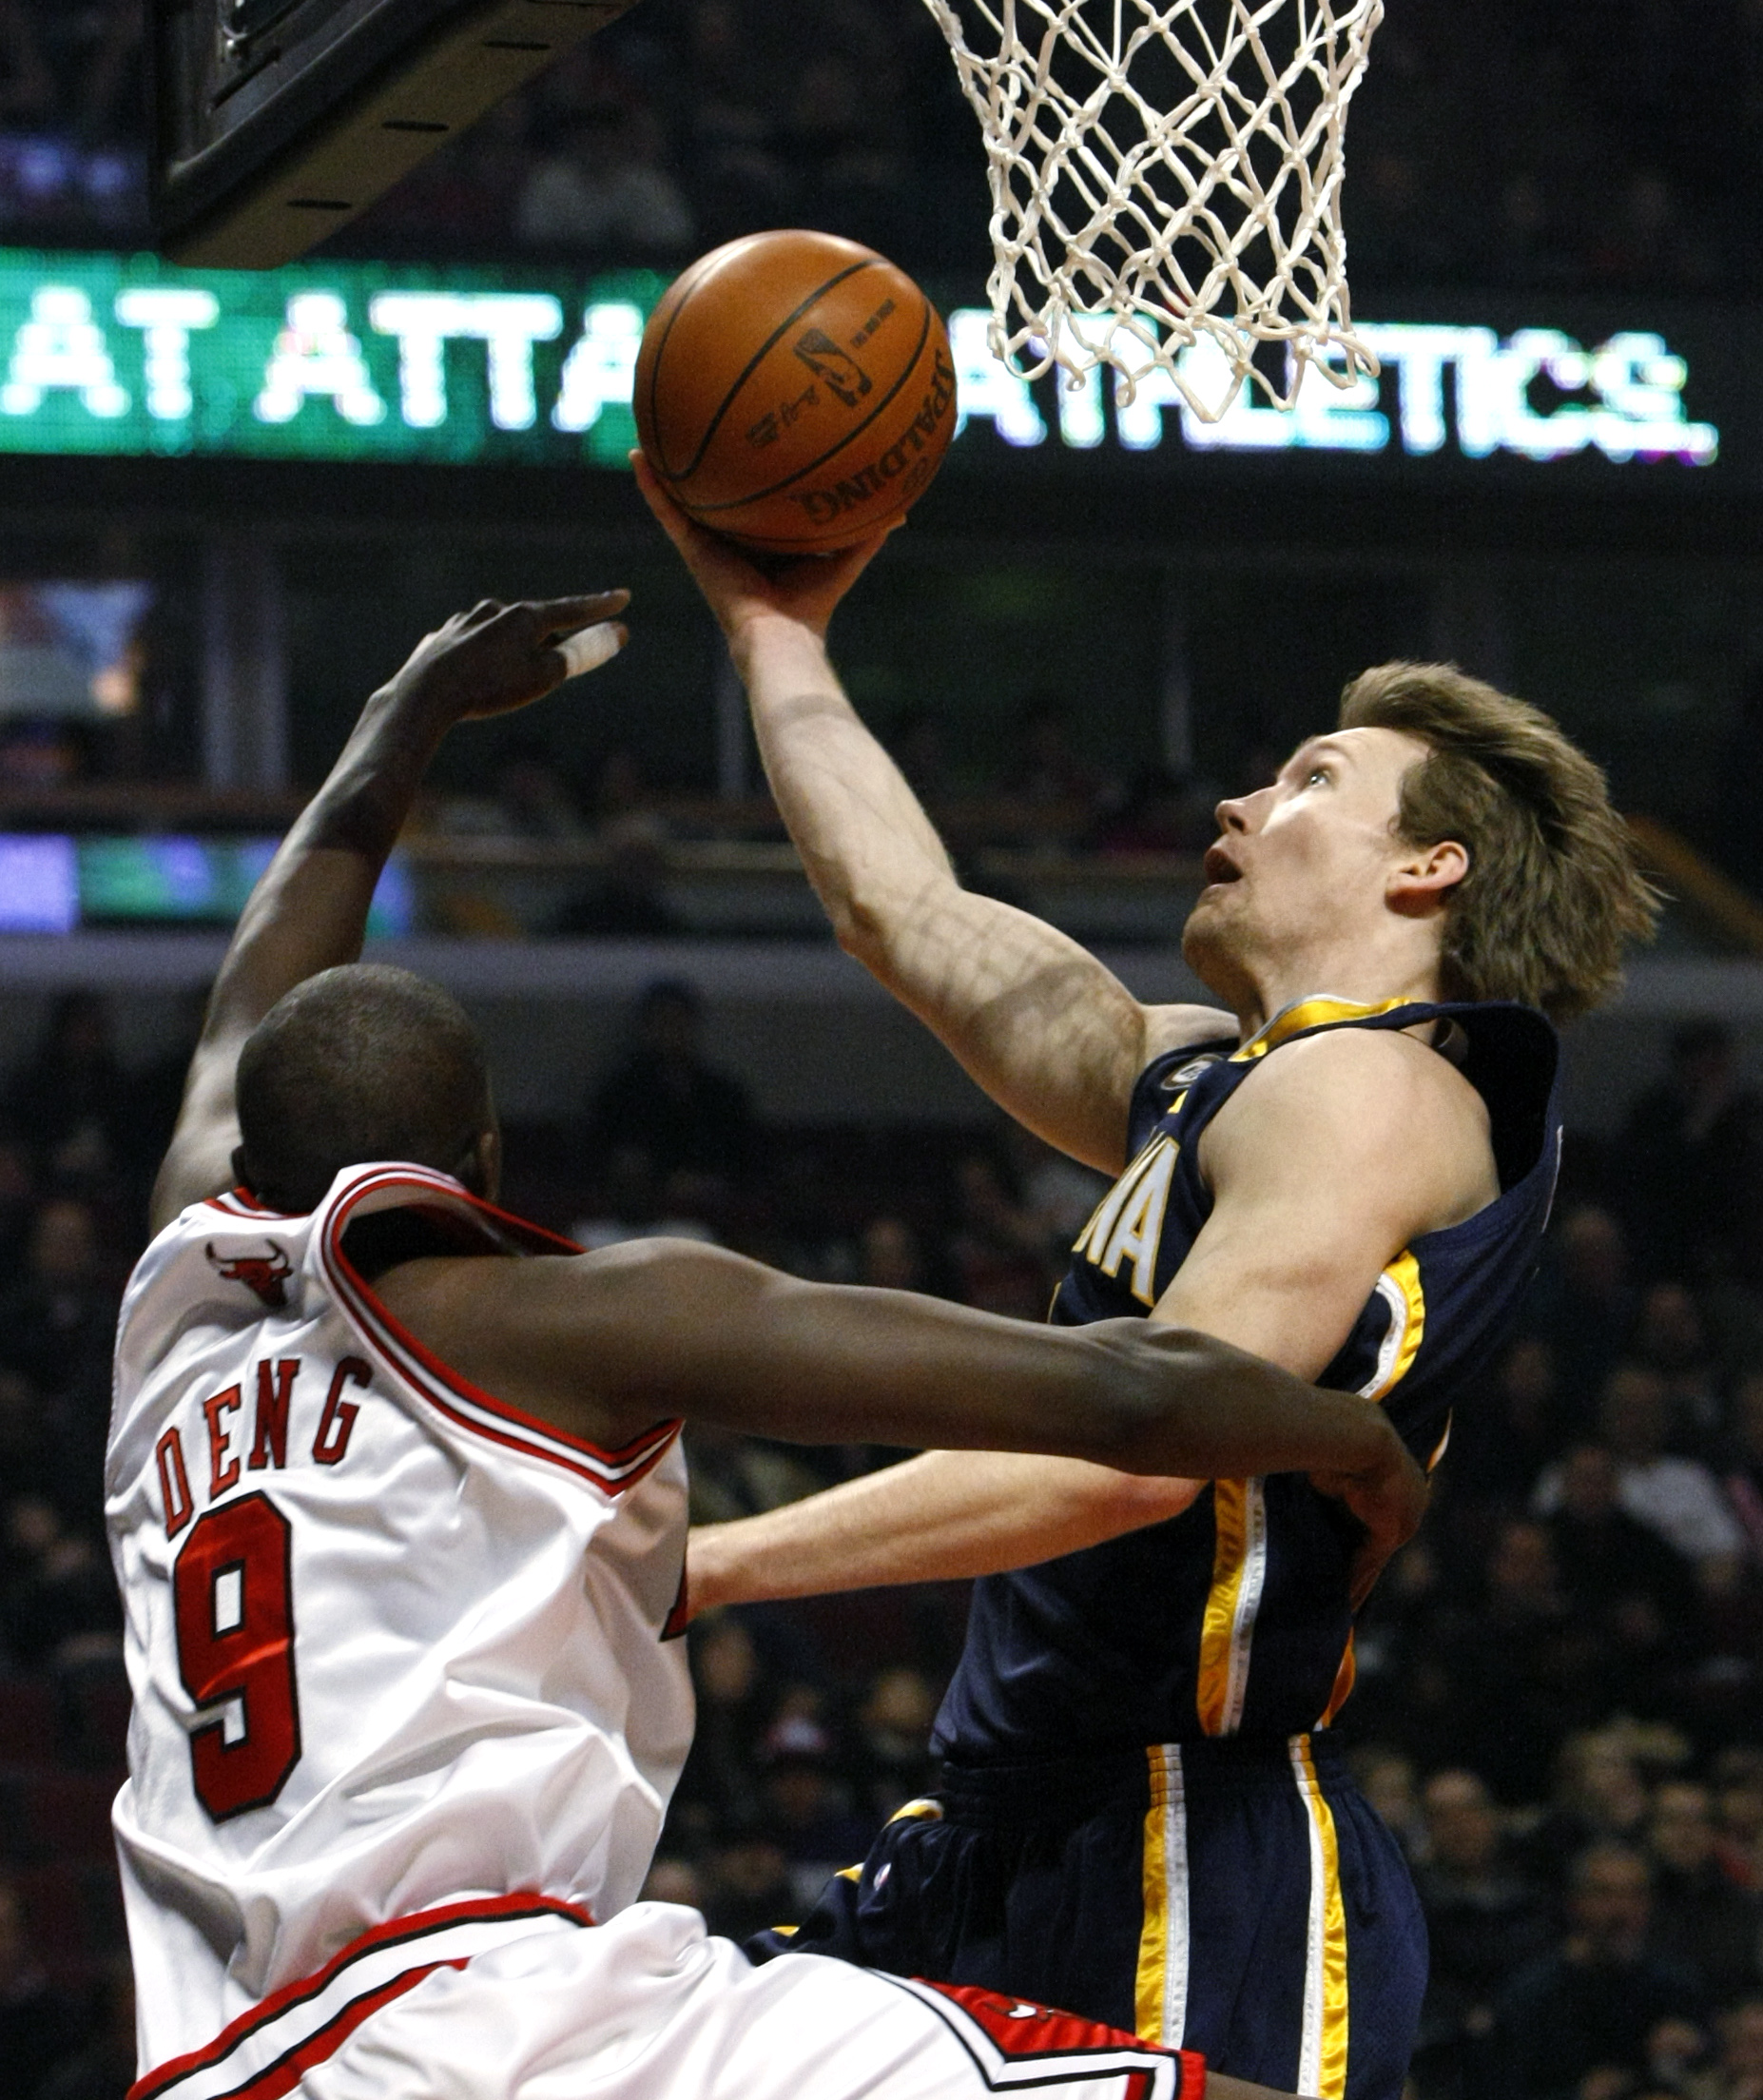 Indiana Pacers forward Mike Dunleavy shoots past the outstretched hand of Chicago Bulls forward Luol Deng during the first half of their NBA basketbal...